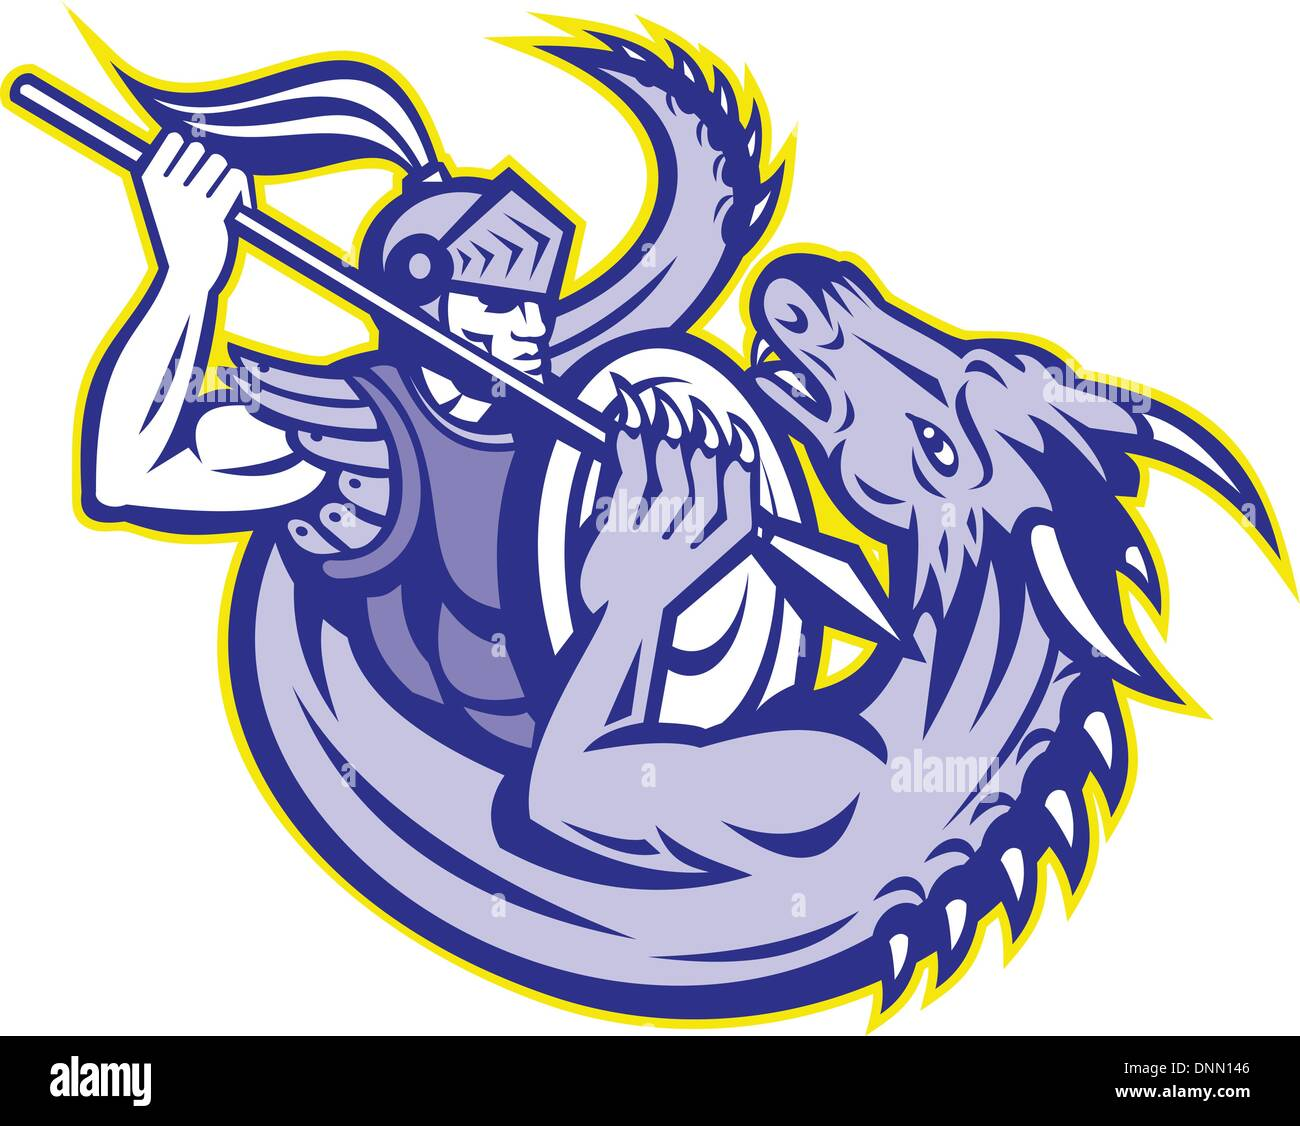 illustration of  St. George the knight fighting a dragon with spear and shield on isolated white background. - Stock Vector